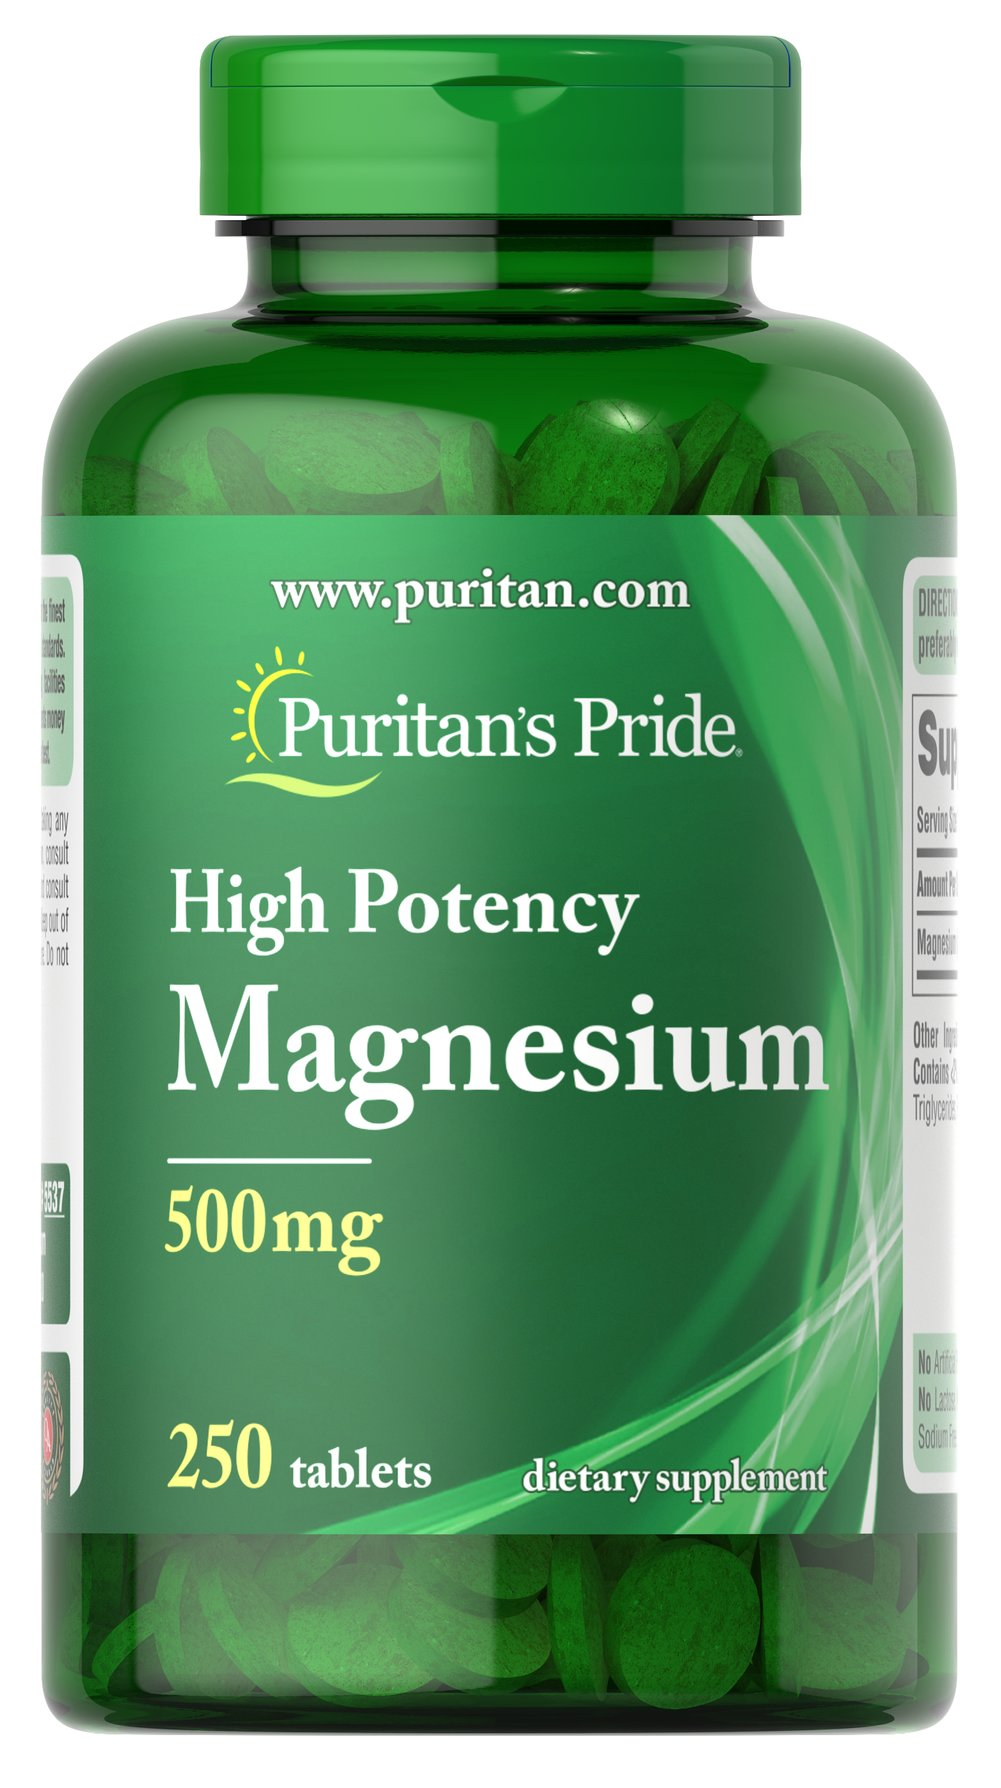 Magnesium 500 mg <p>Magnesium offers another option, besides Calcium, for supporting bone health.** Magnesium plays an essential role in maintaining bone mineralization, and is also involved in muscle contractions and nerve impulses.** Adults can take one caplet daily with a meal.</p> 250 Tablets 500 mg $27.99